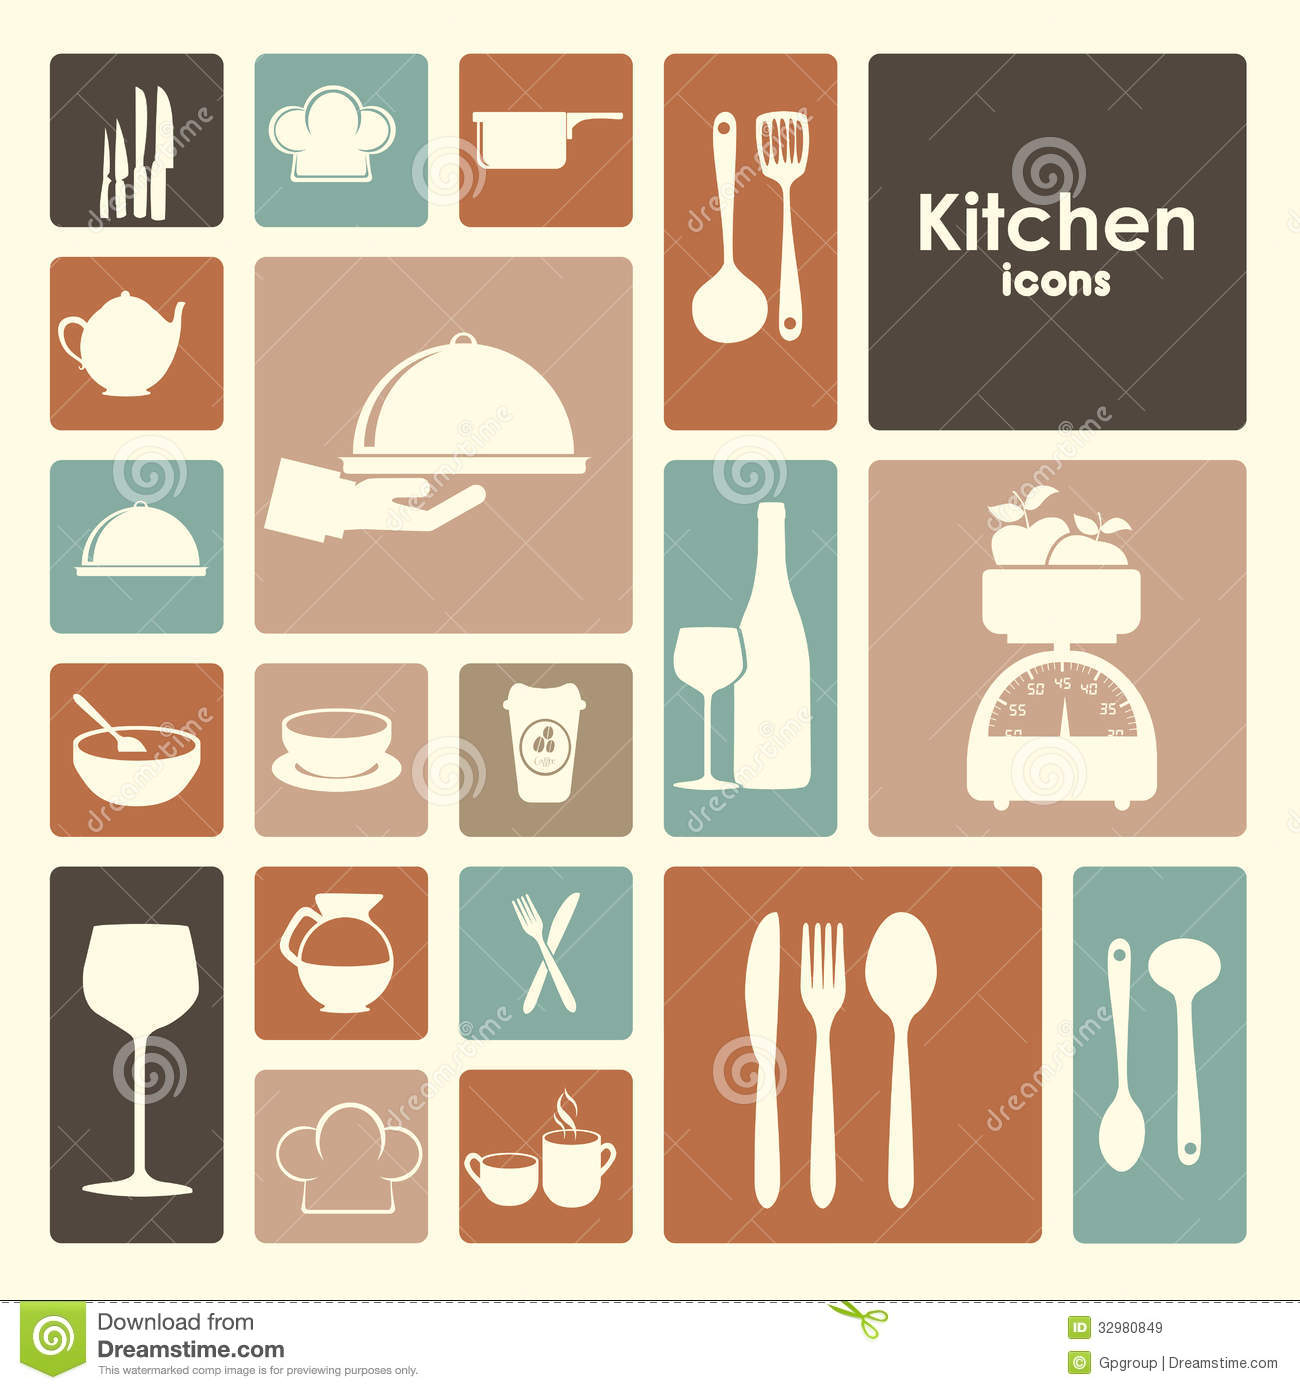 For restaurant pictures graphics illustrations clipart photos - Icons Illustration Restaurant